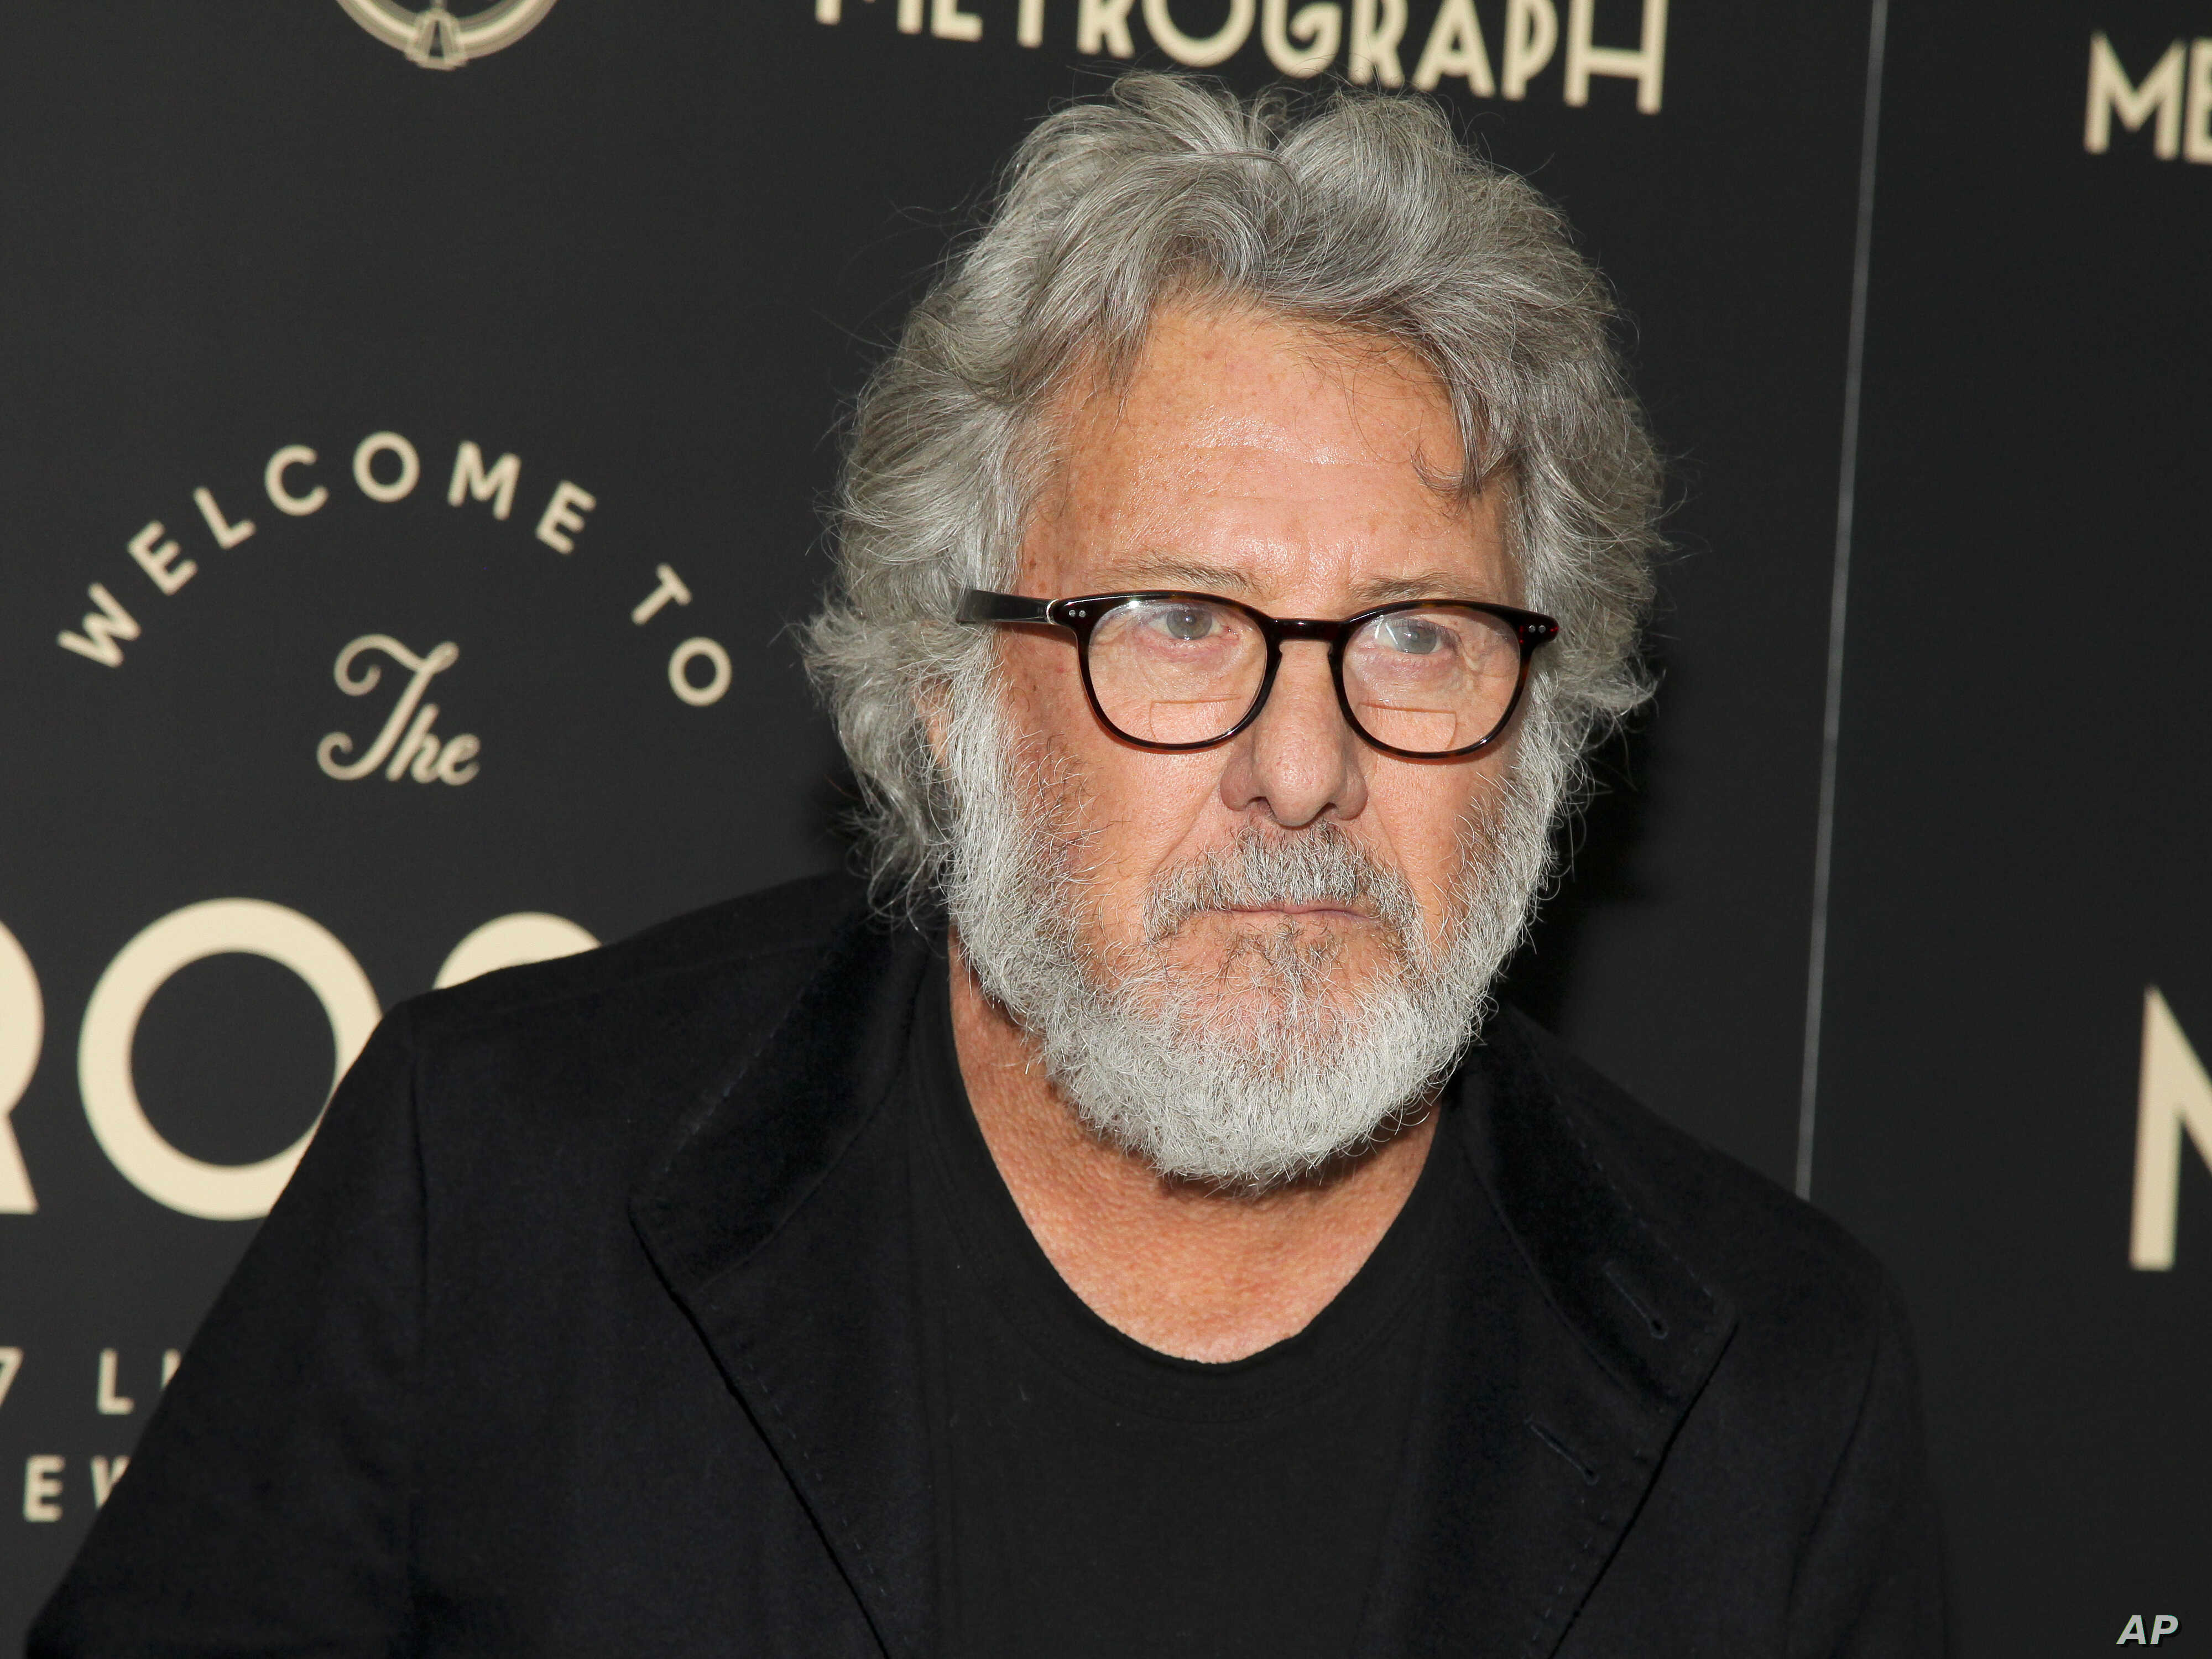 Dustin Hoffman On Oscars It S Always Been Racism Voice Of America English